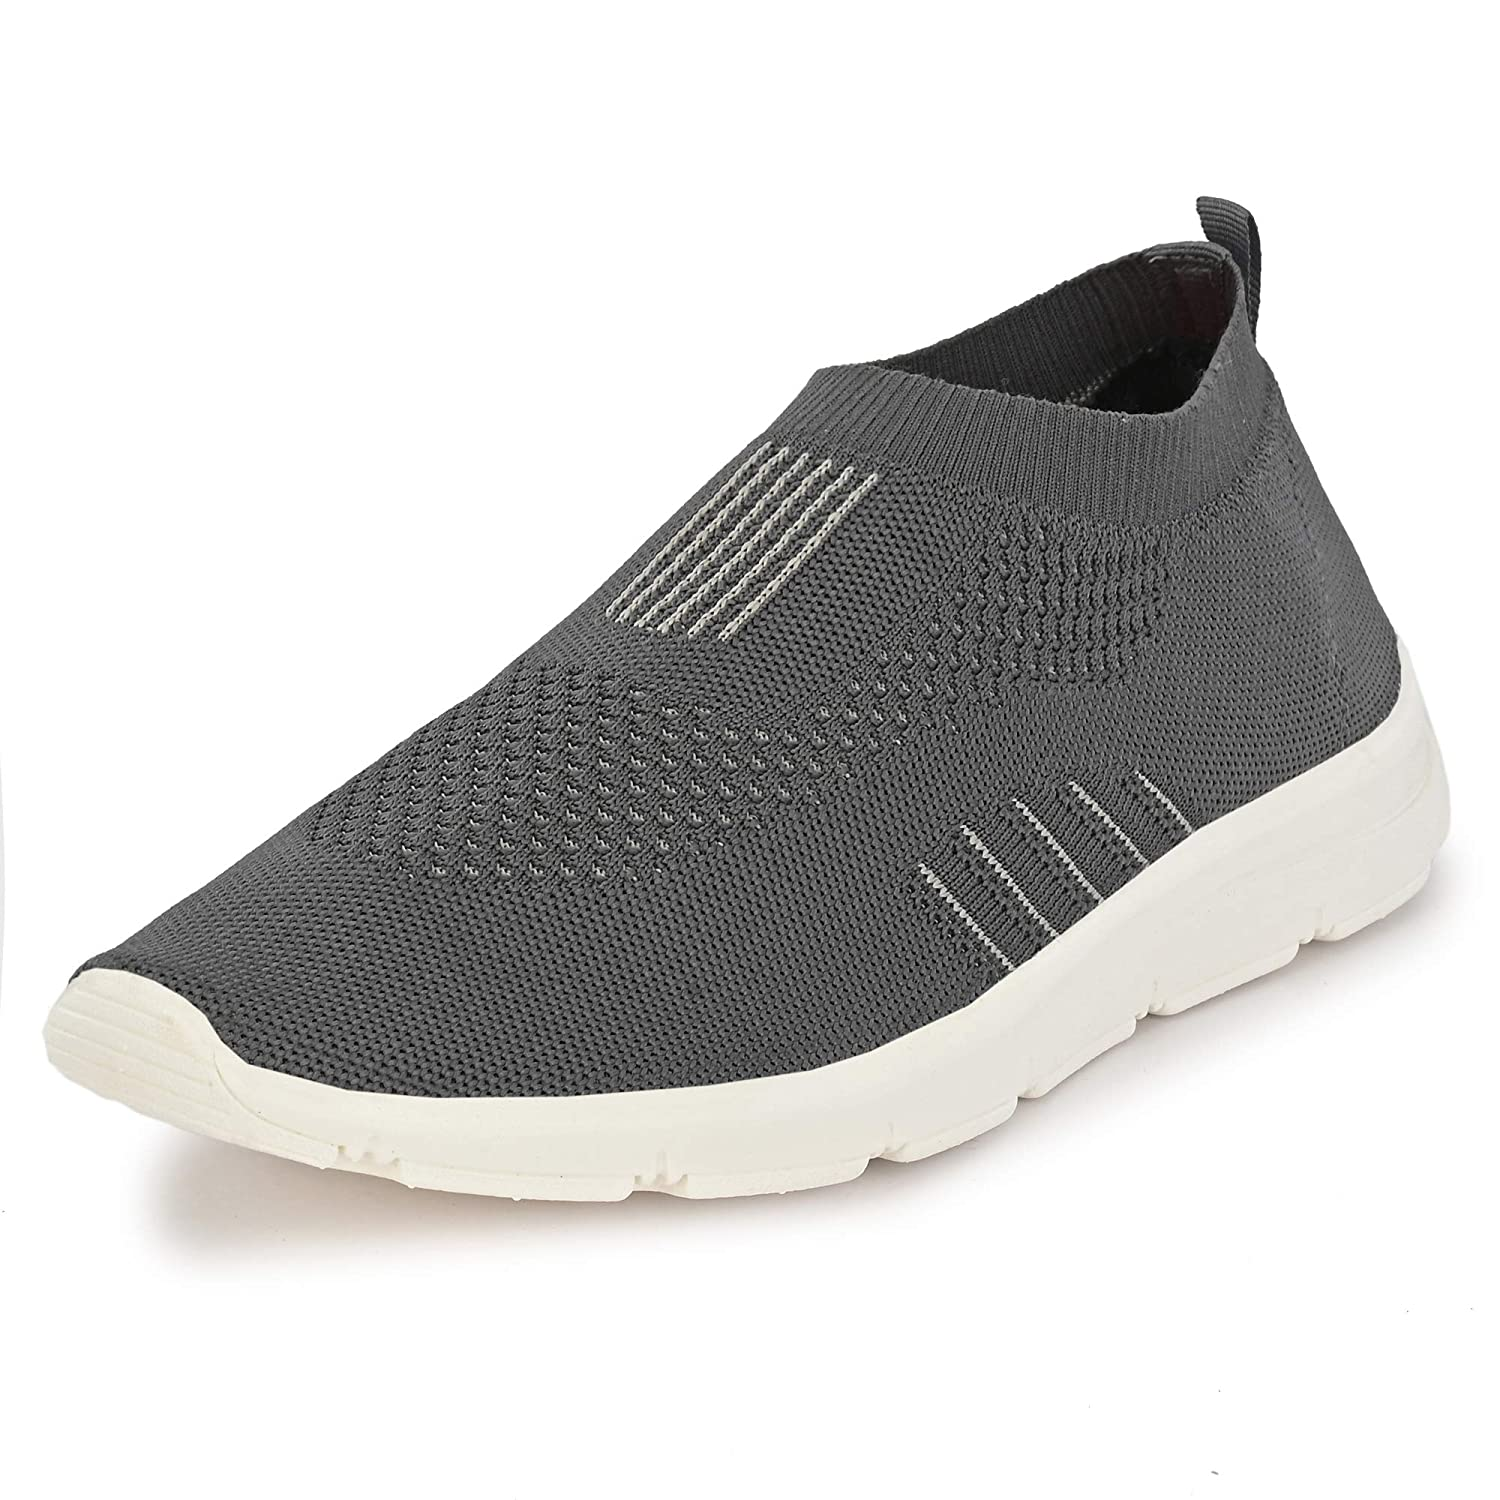 Best running shoes for men from Bourge